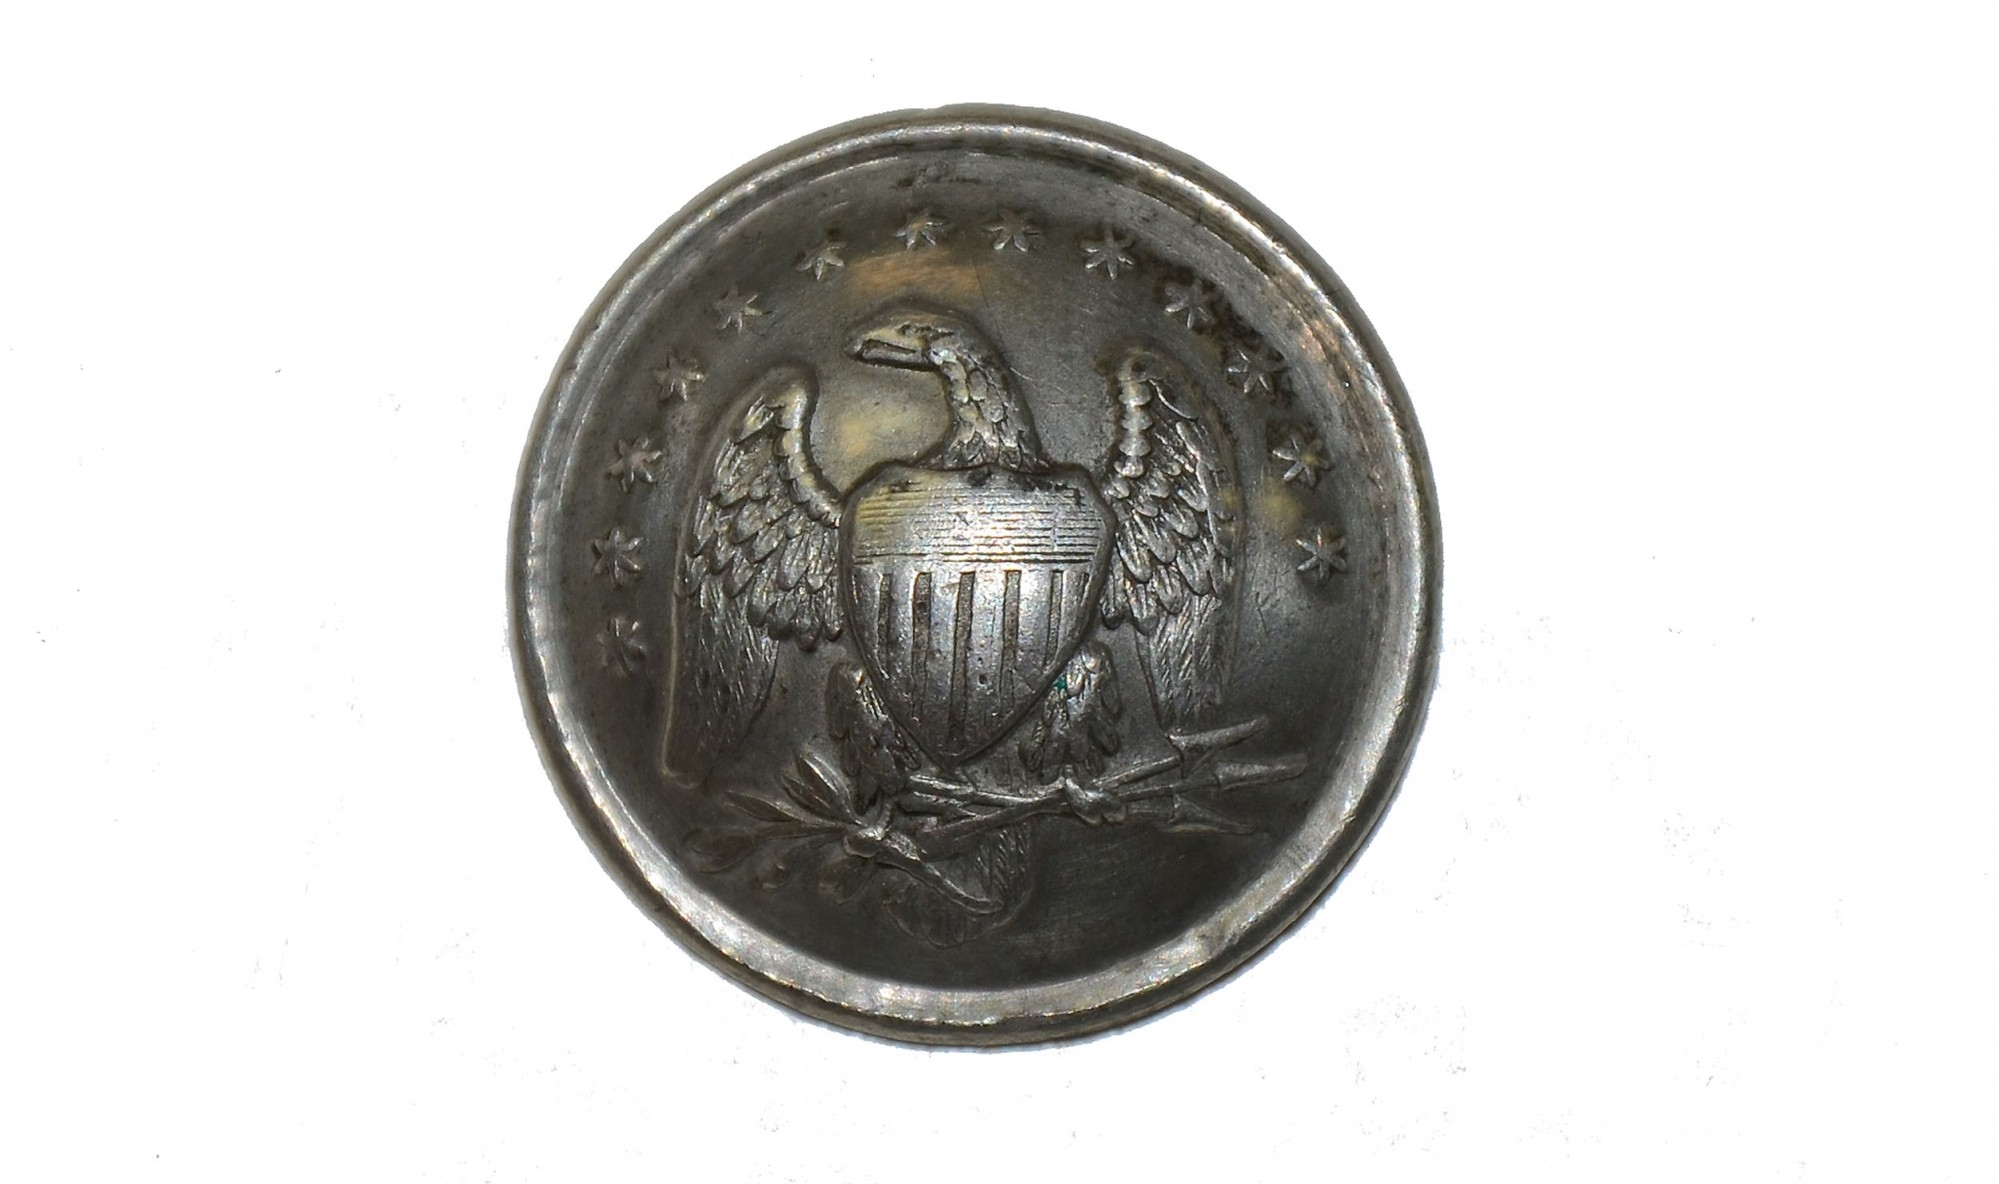 NICE CONDITION CHASSEUR BUTTON